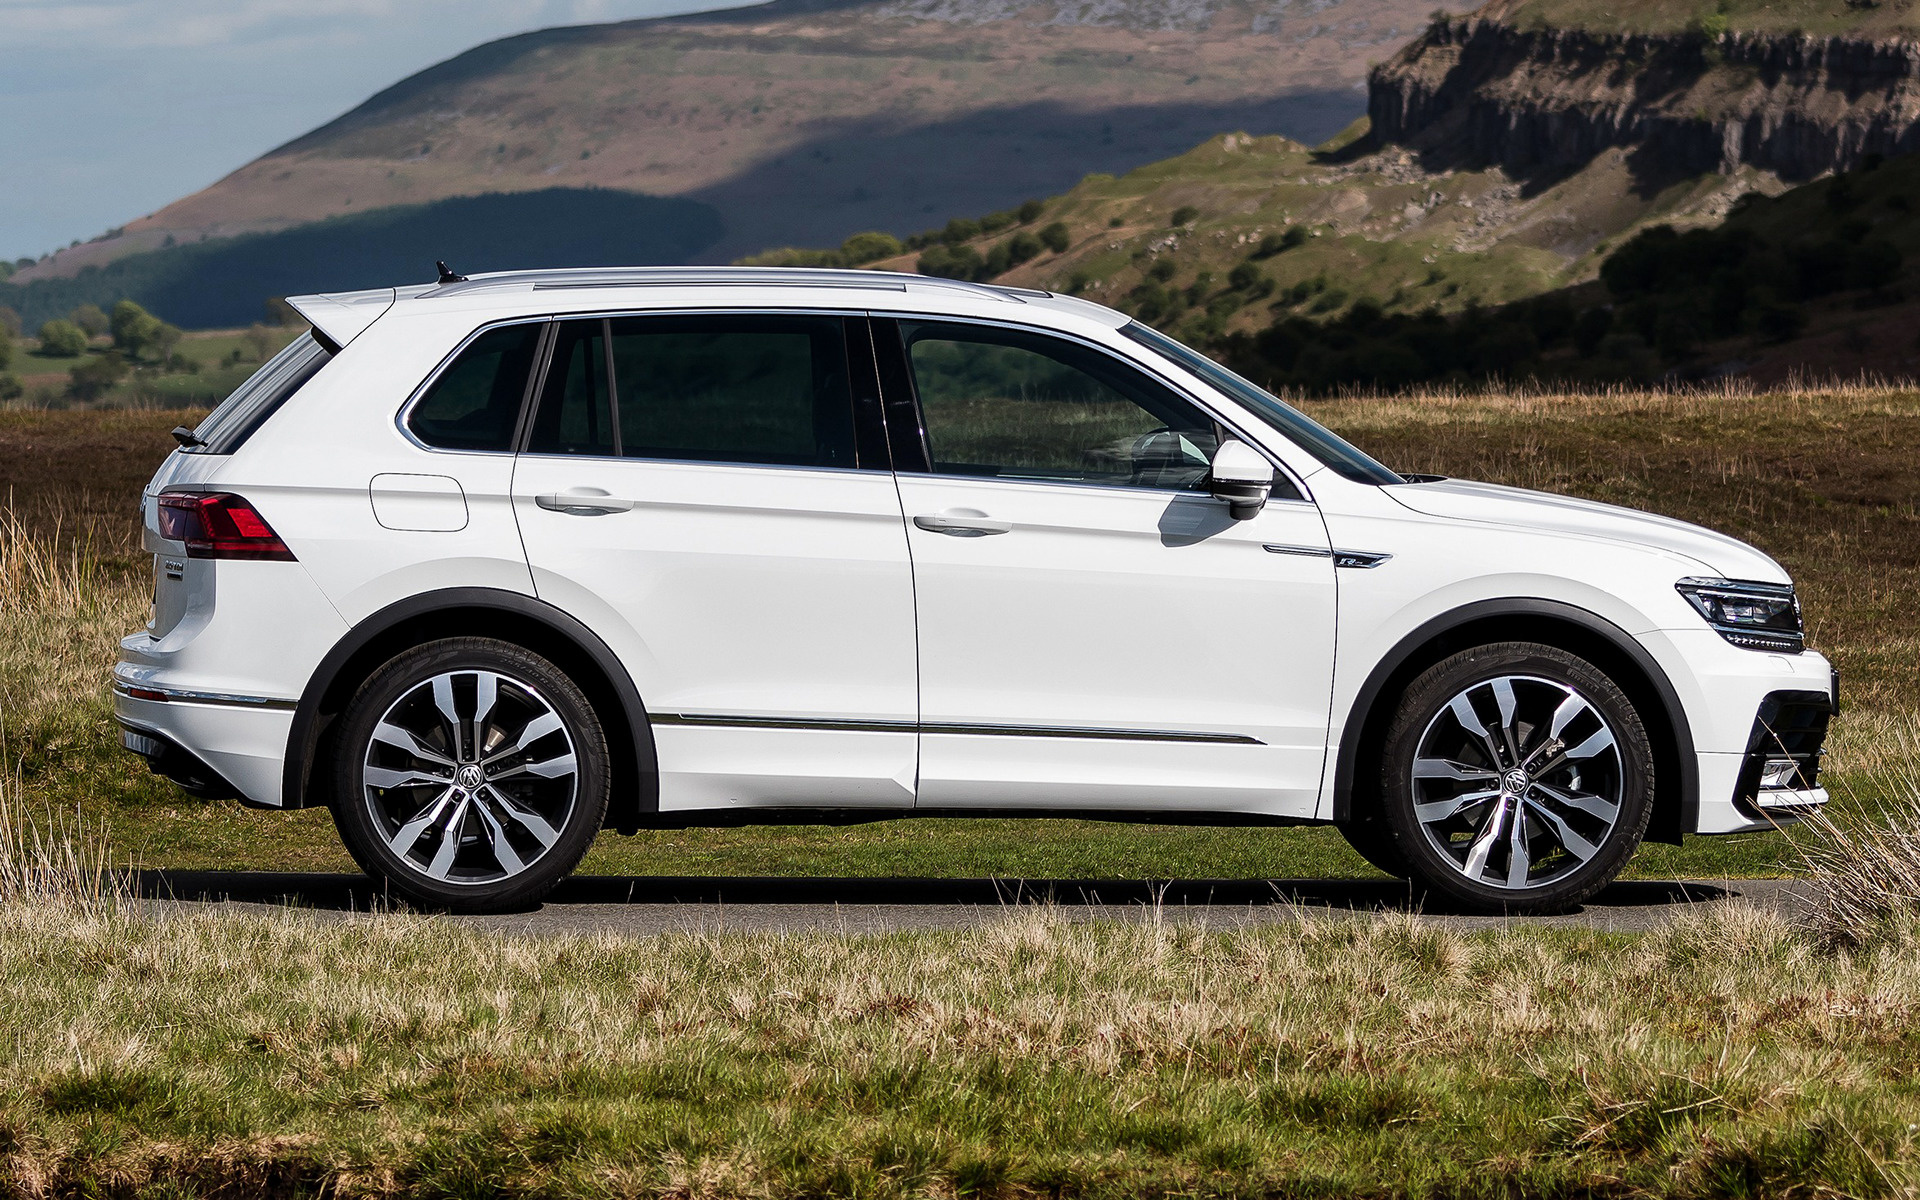 2016 volkswagen tiguan r line uk wallpapers and hd. Black Bedroom Furniture Sets. Home Design Ideas